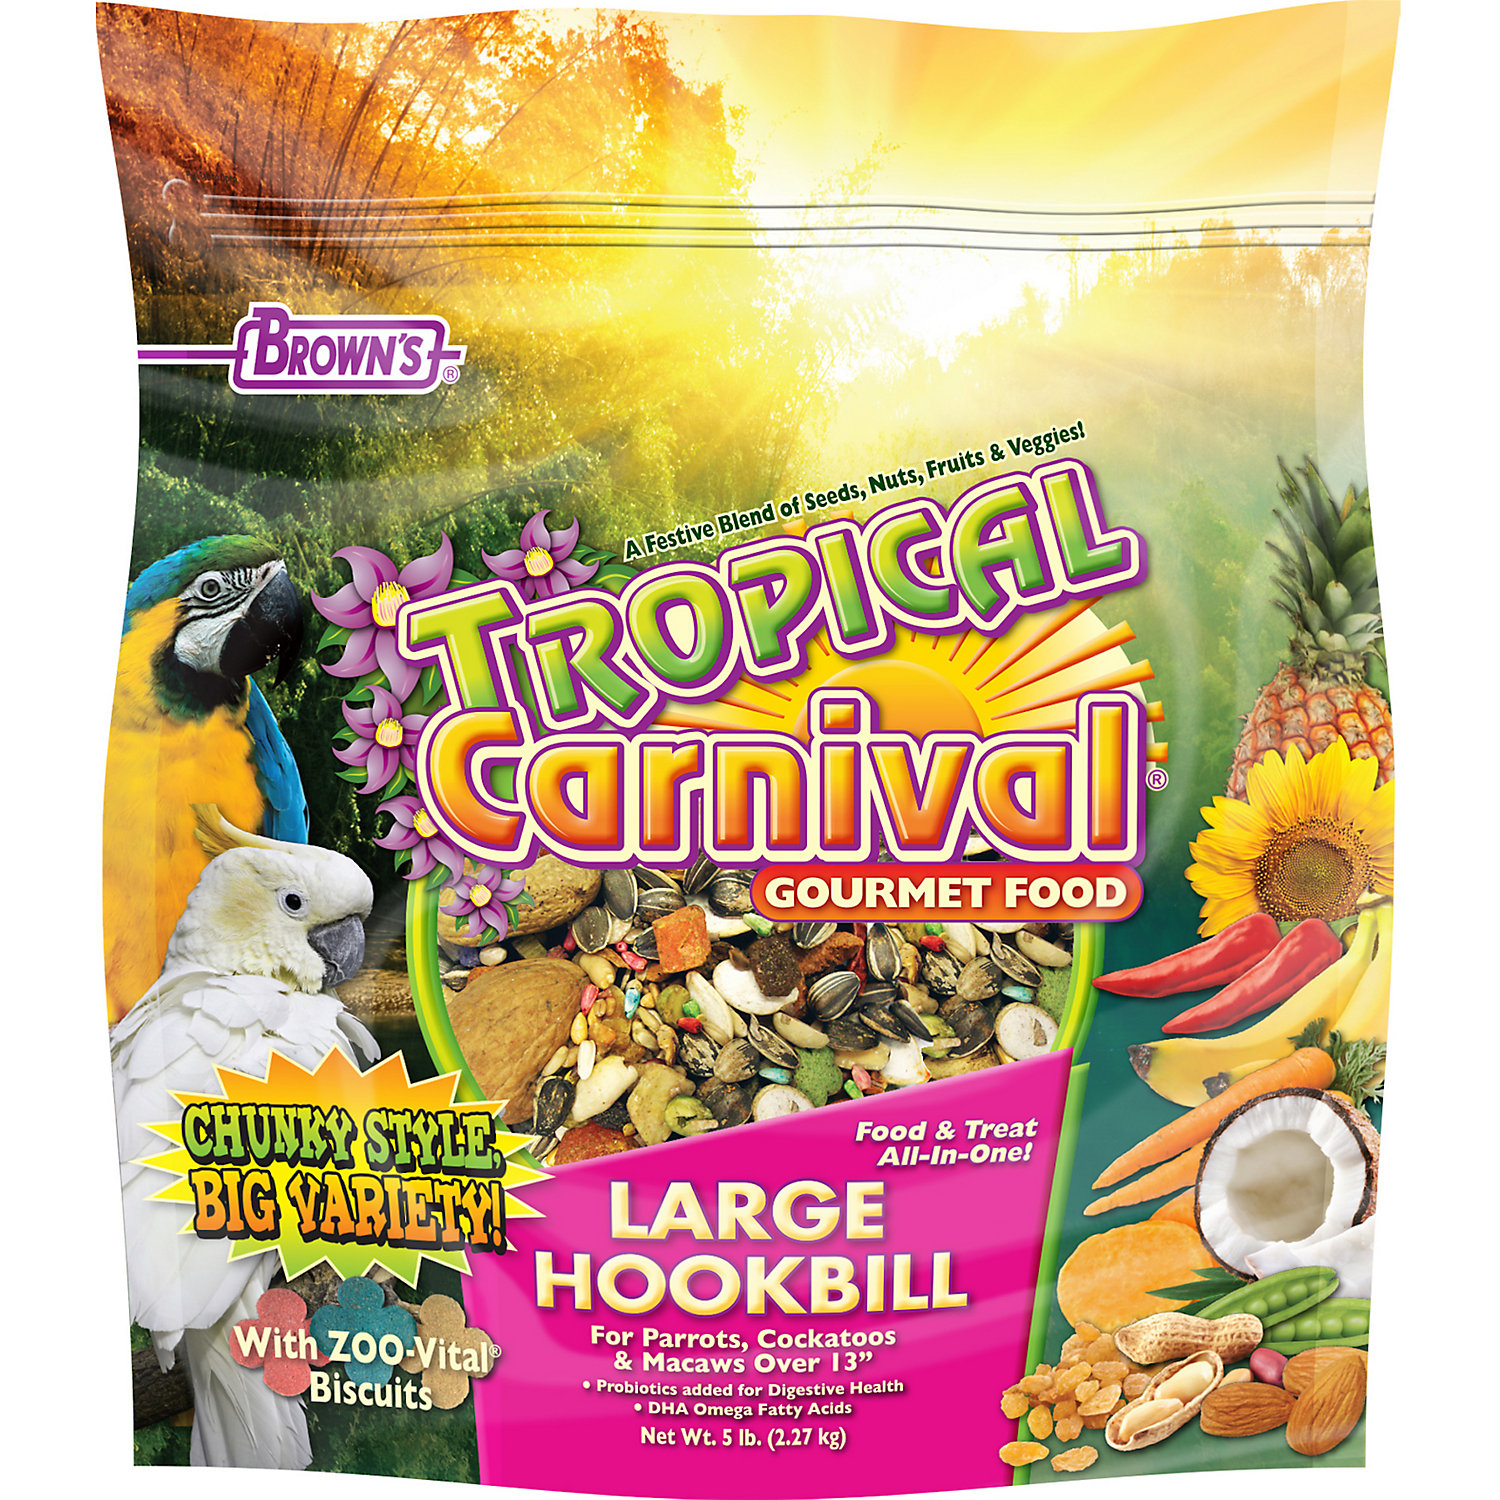 Browns Tropical Carnival Gourmet Large Hookbill Food 5 Lbs.